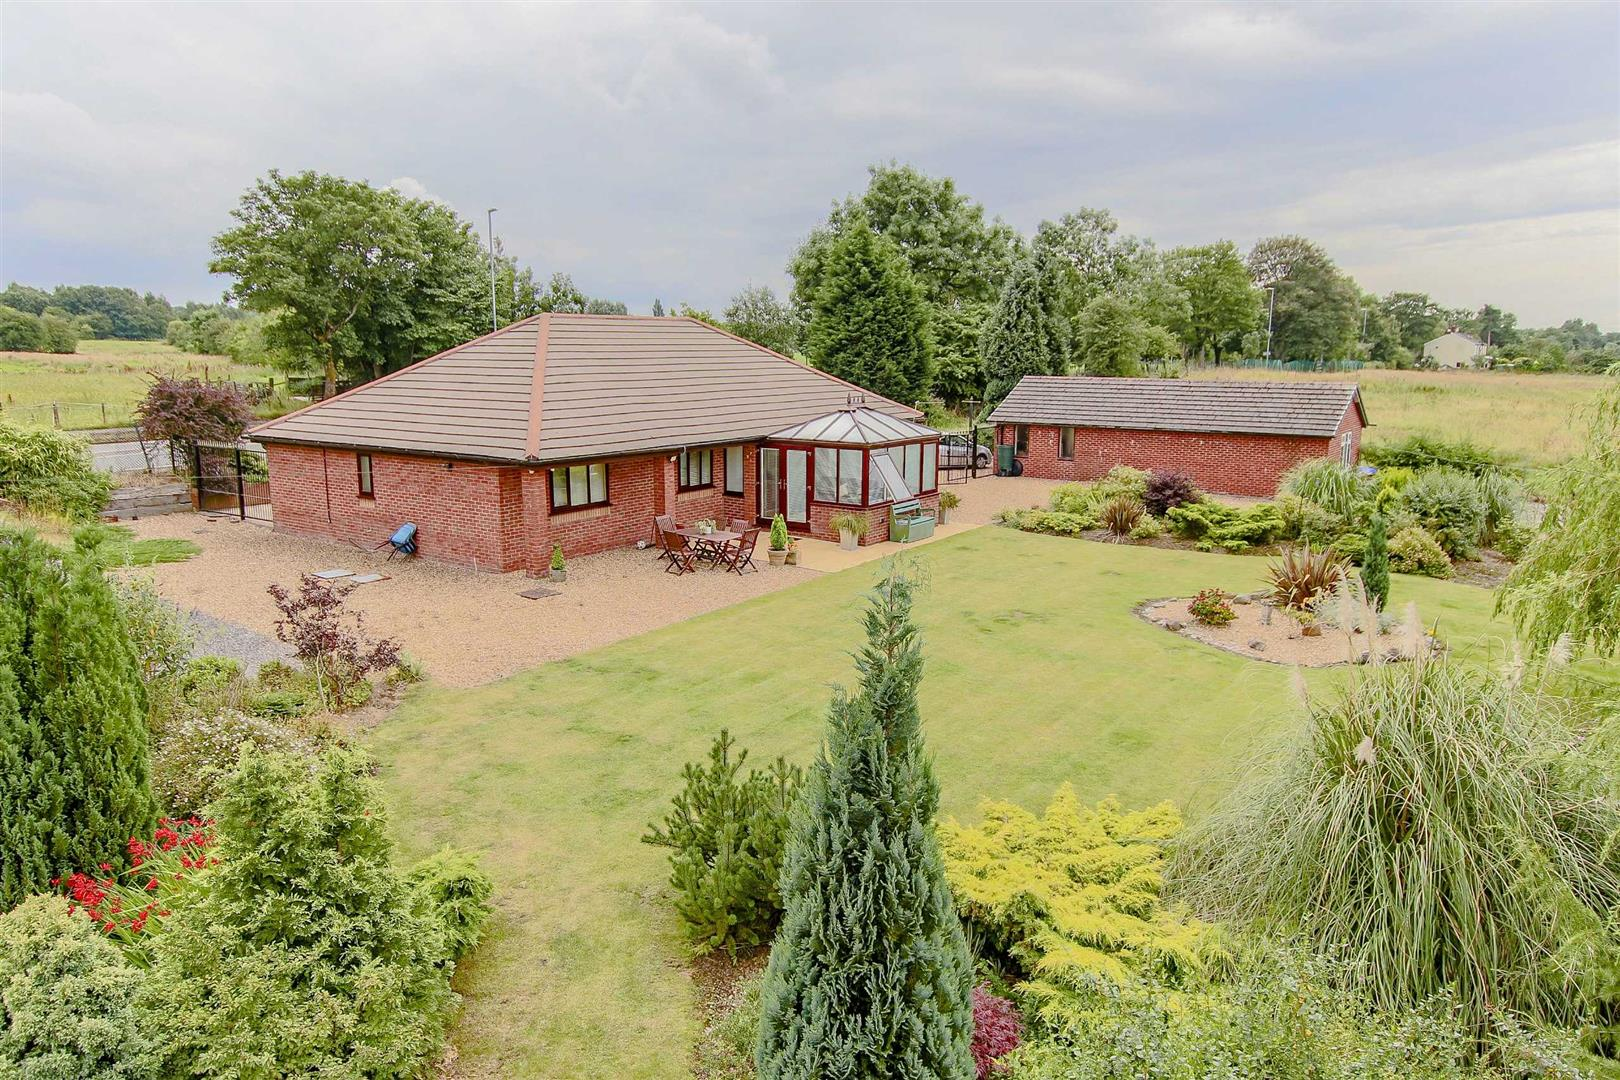 3 Bedroom Detached Bungalow For Sale - Main Image